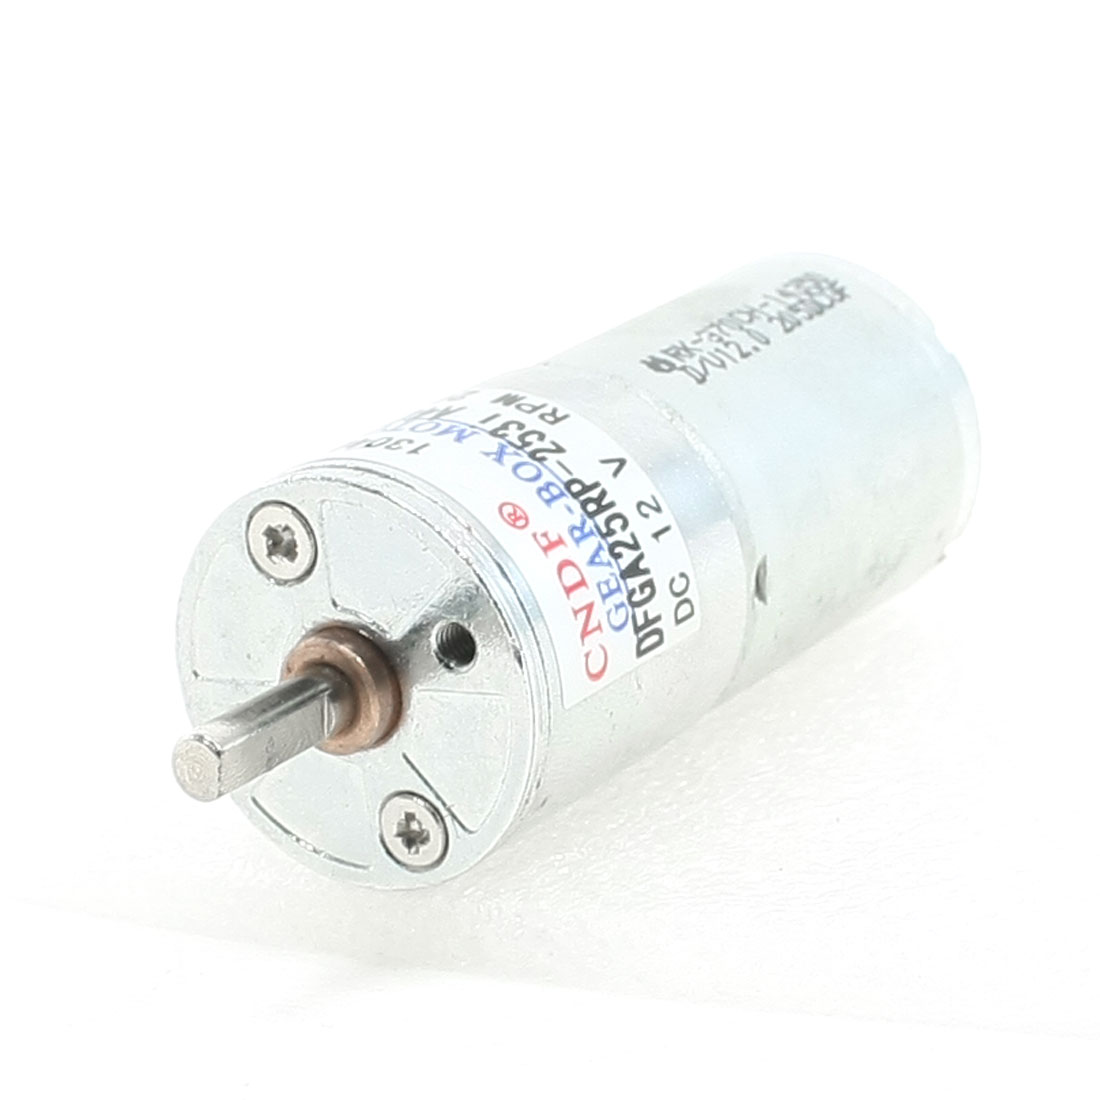 DC 12V 20RPM Speed Reducing Power Geared Motor 4mm x 11mm